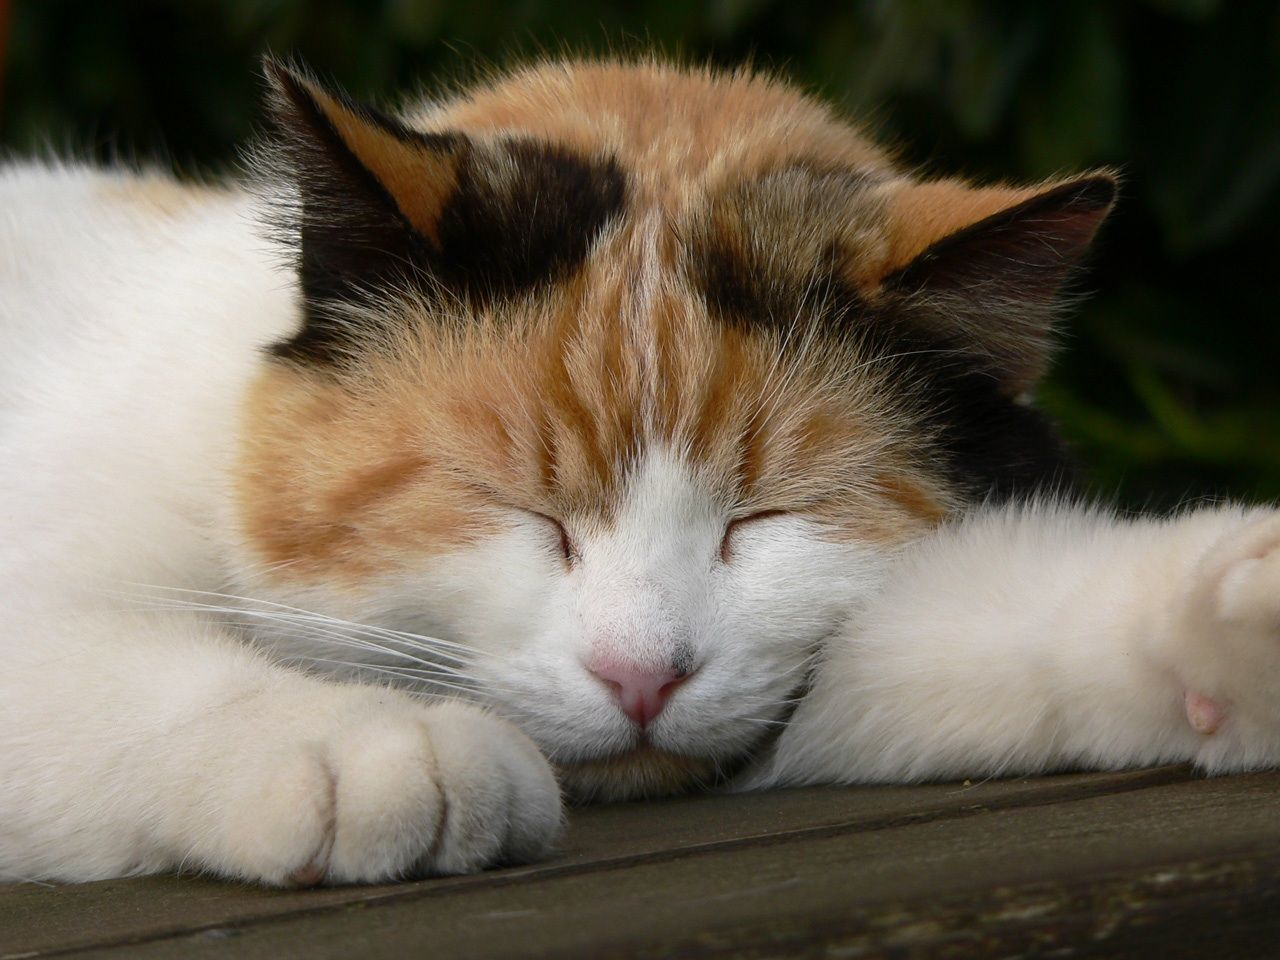 5 Tips for Getting a Better Night's Sleep Pretty cats